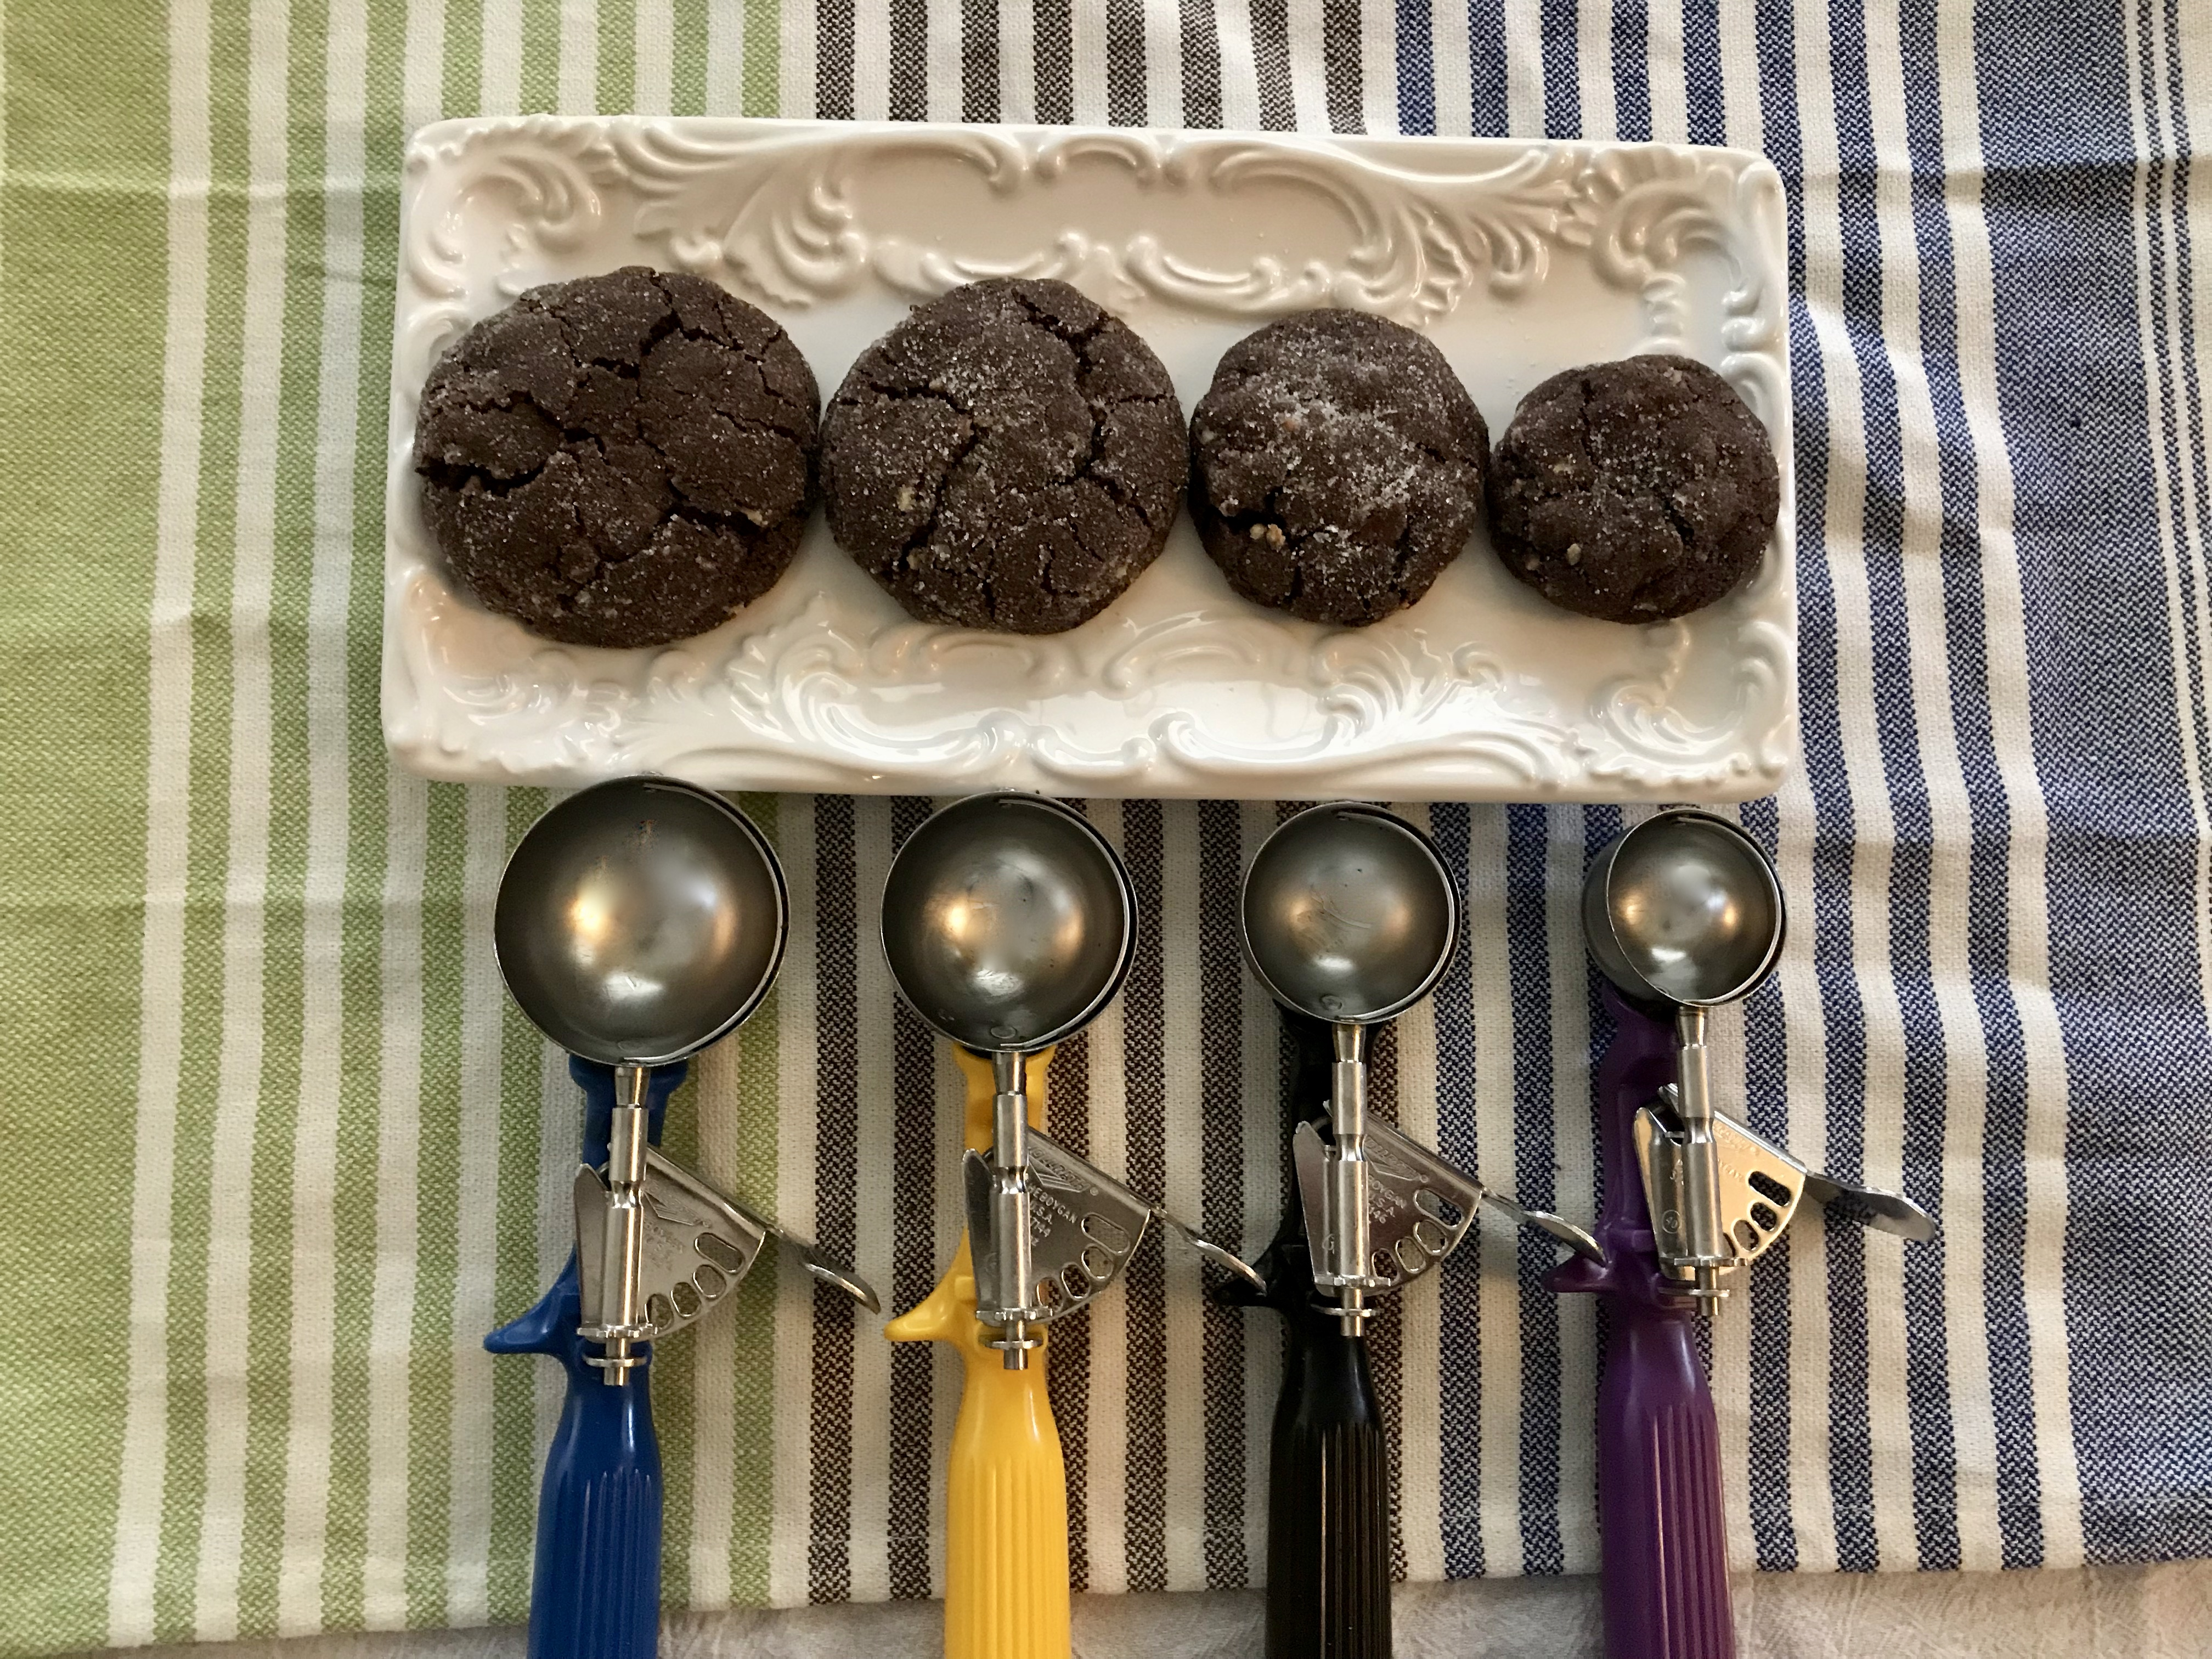 Different dishers with varying sizes of baked cookies